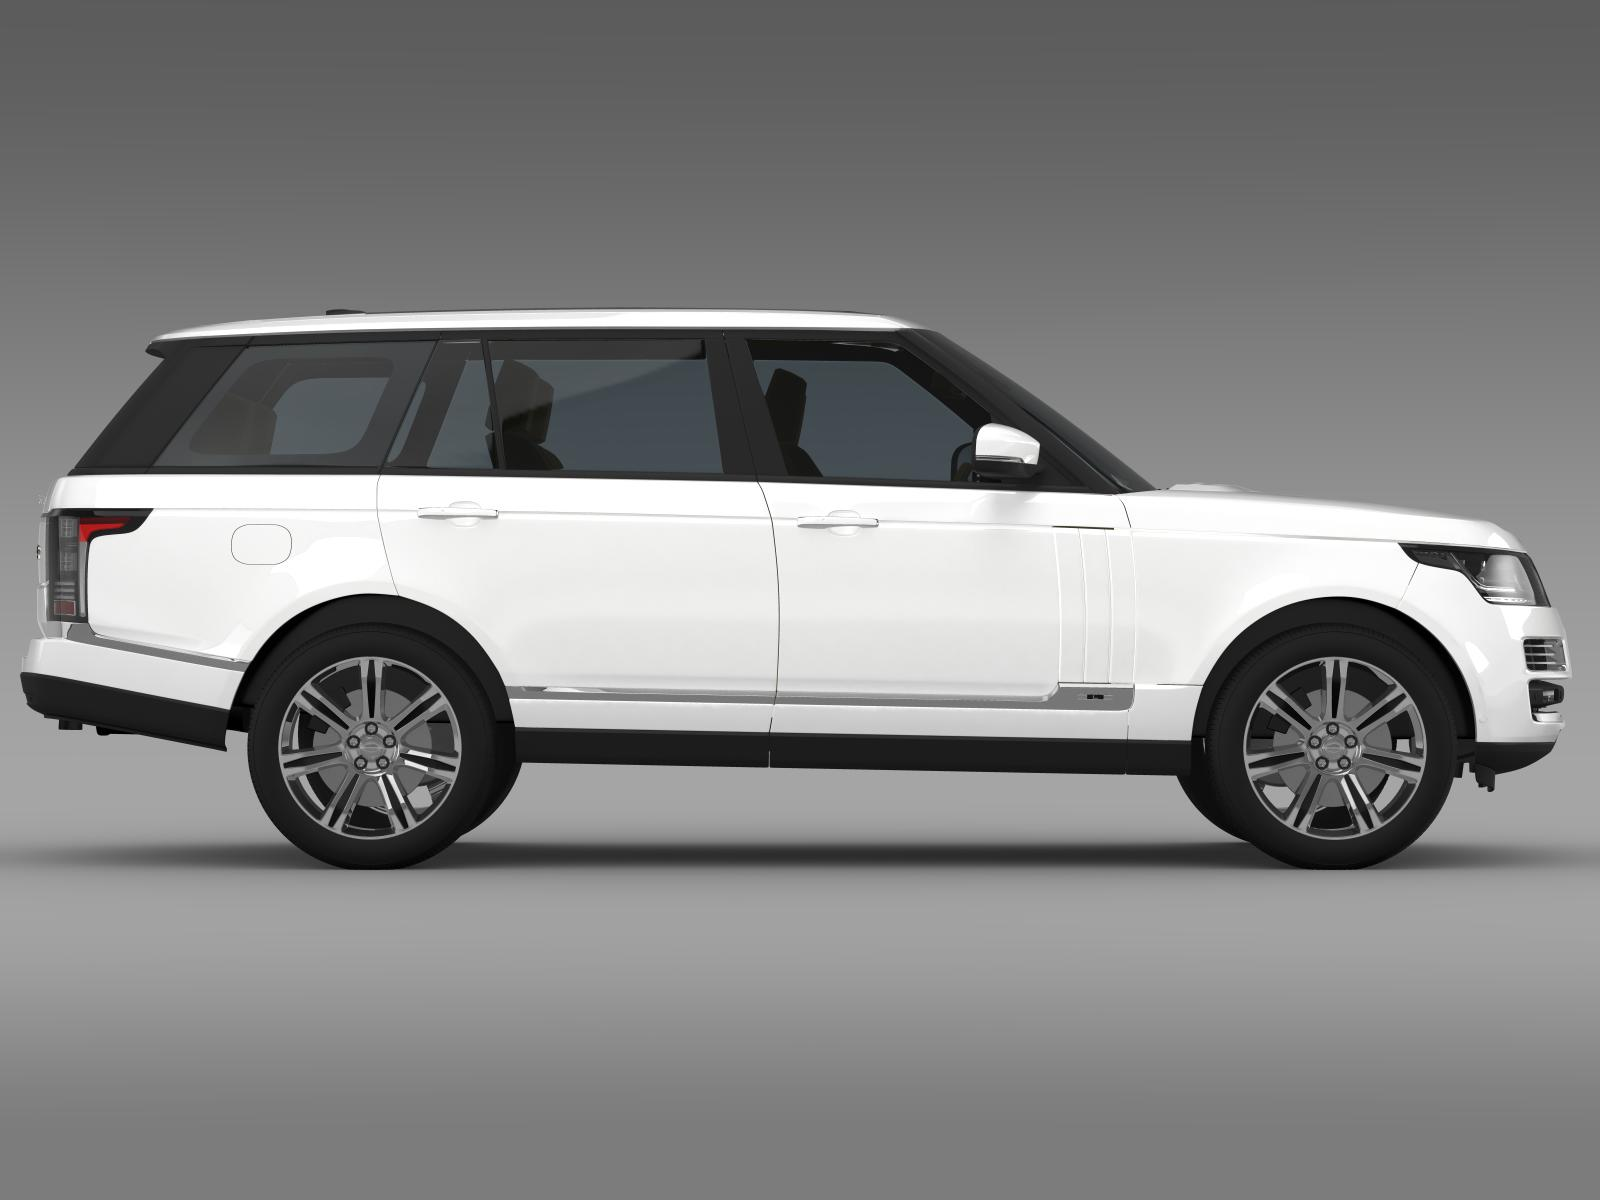 range rover autobiography black lwb l405 3d model. Black Bedroom Furniture Sets. Home Design Ideas